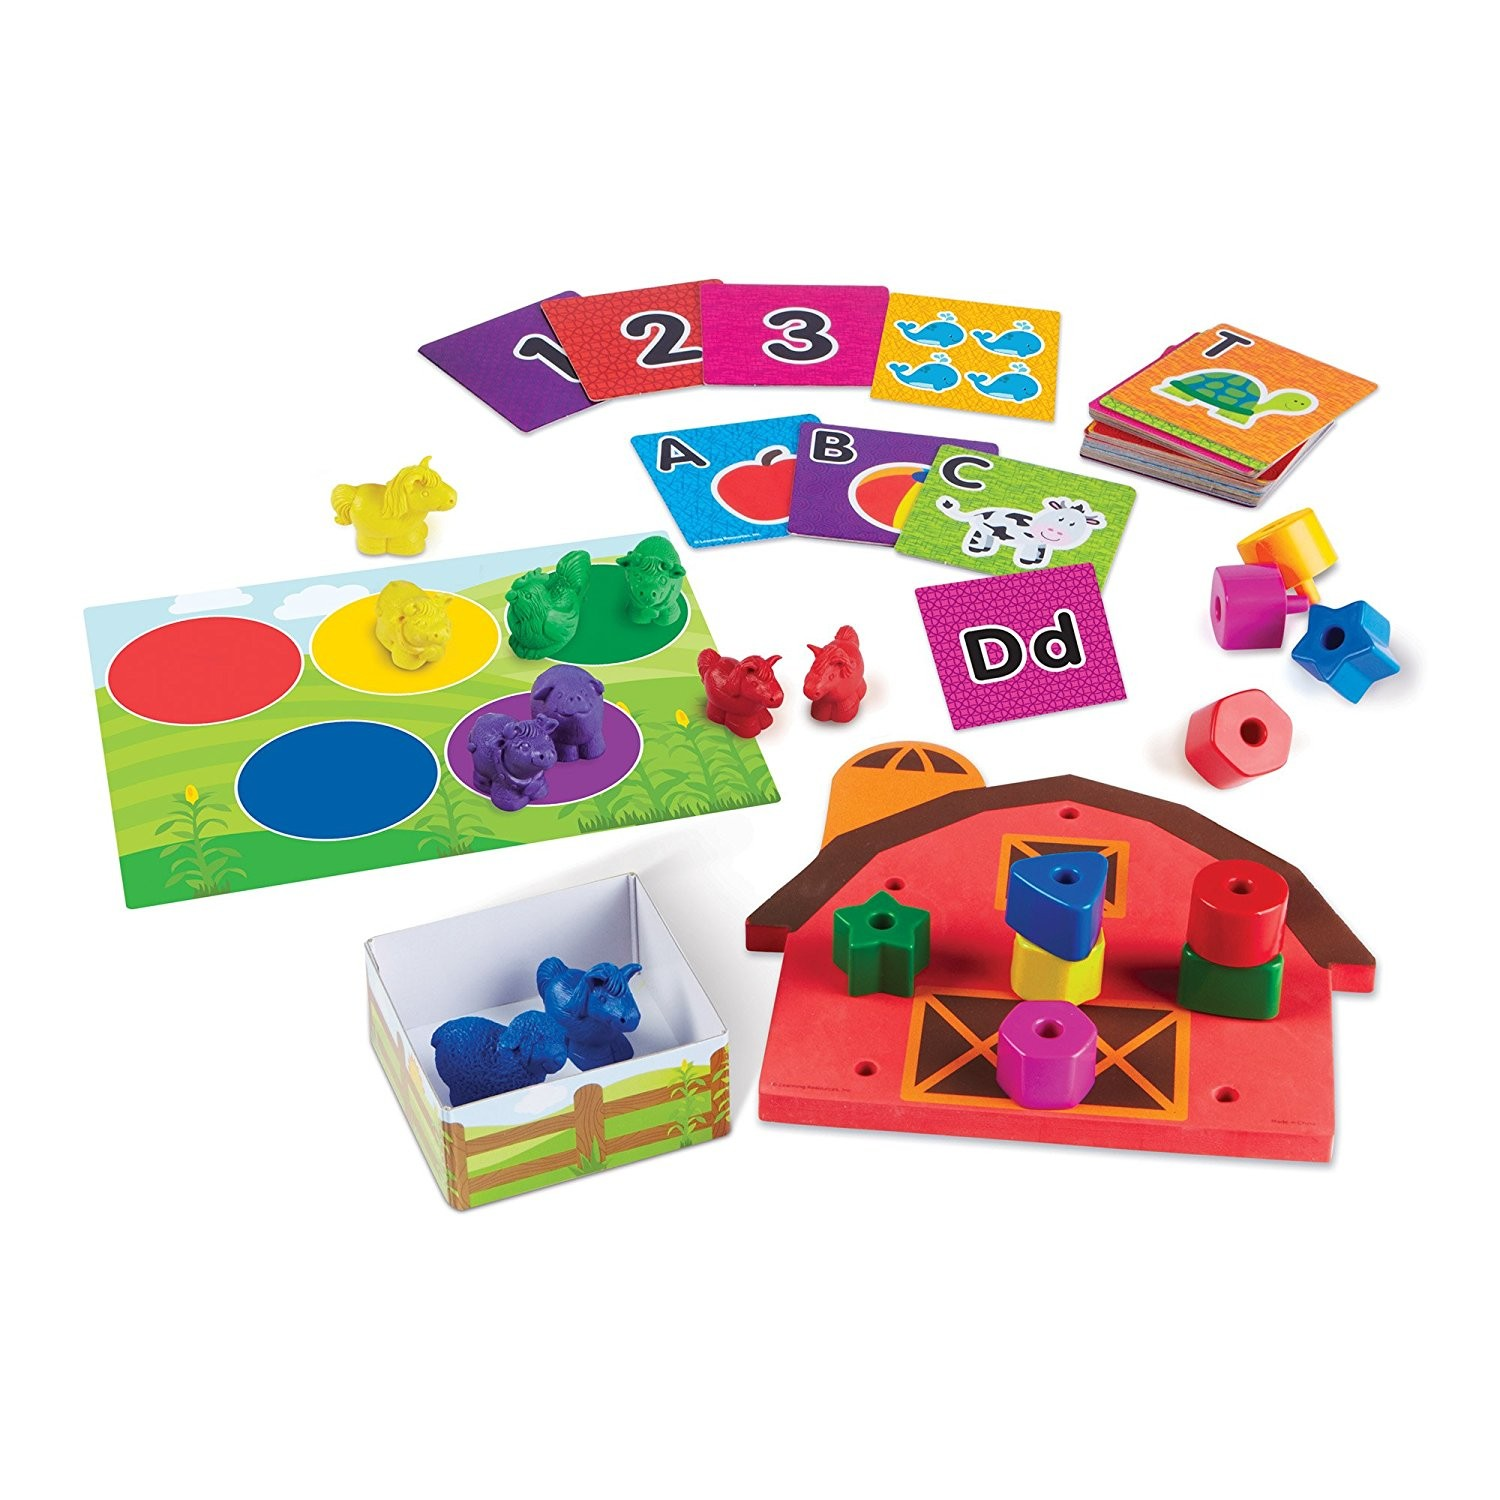 All Ready for Toddler Time Readiness Learning Kit Educational